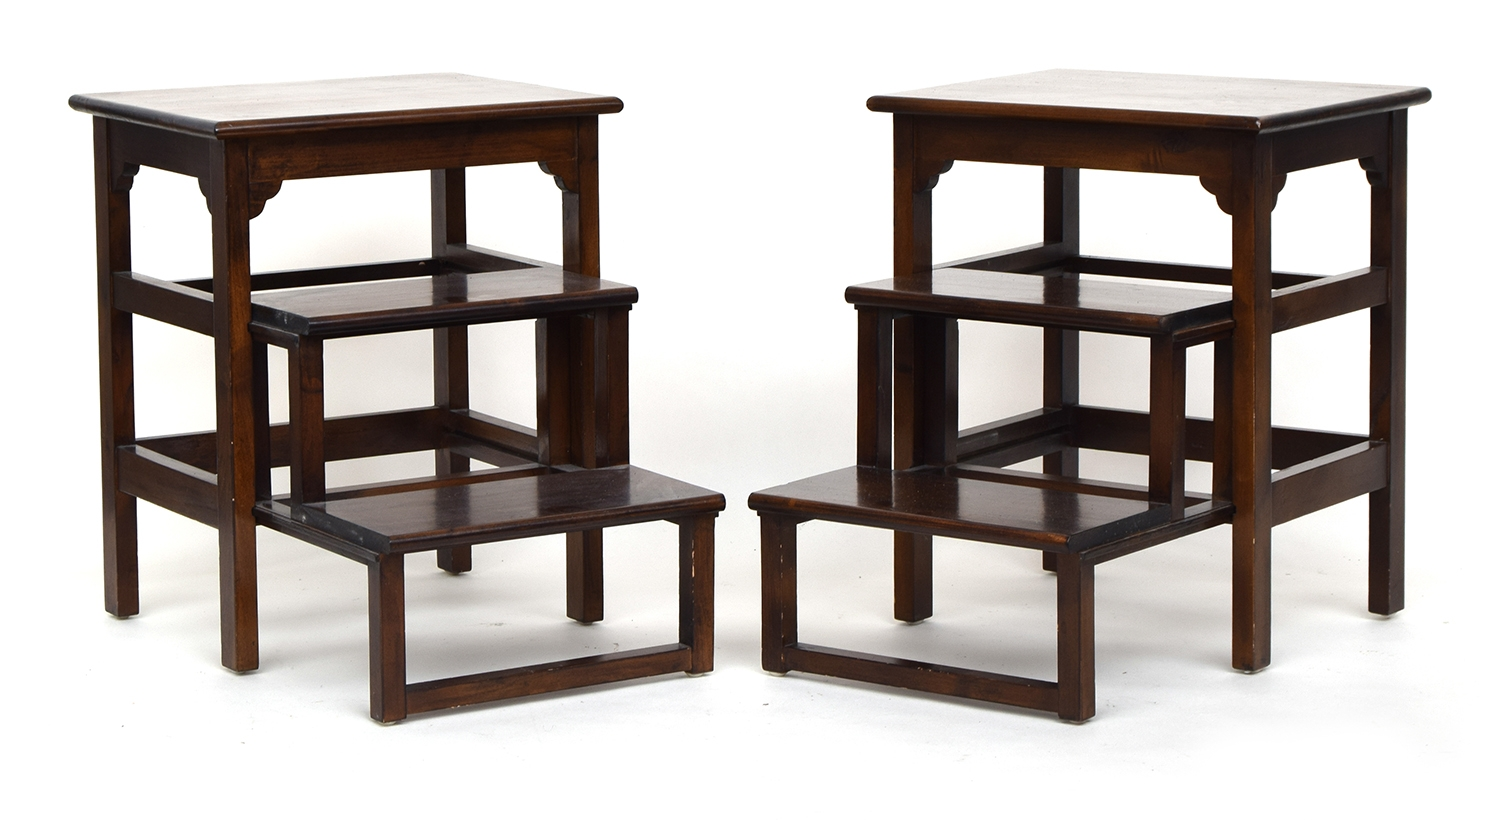 A pair of contemporary metamorphic library steps/occasional tables, the lower two steps with sliding